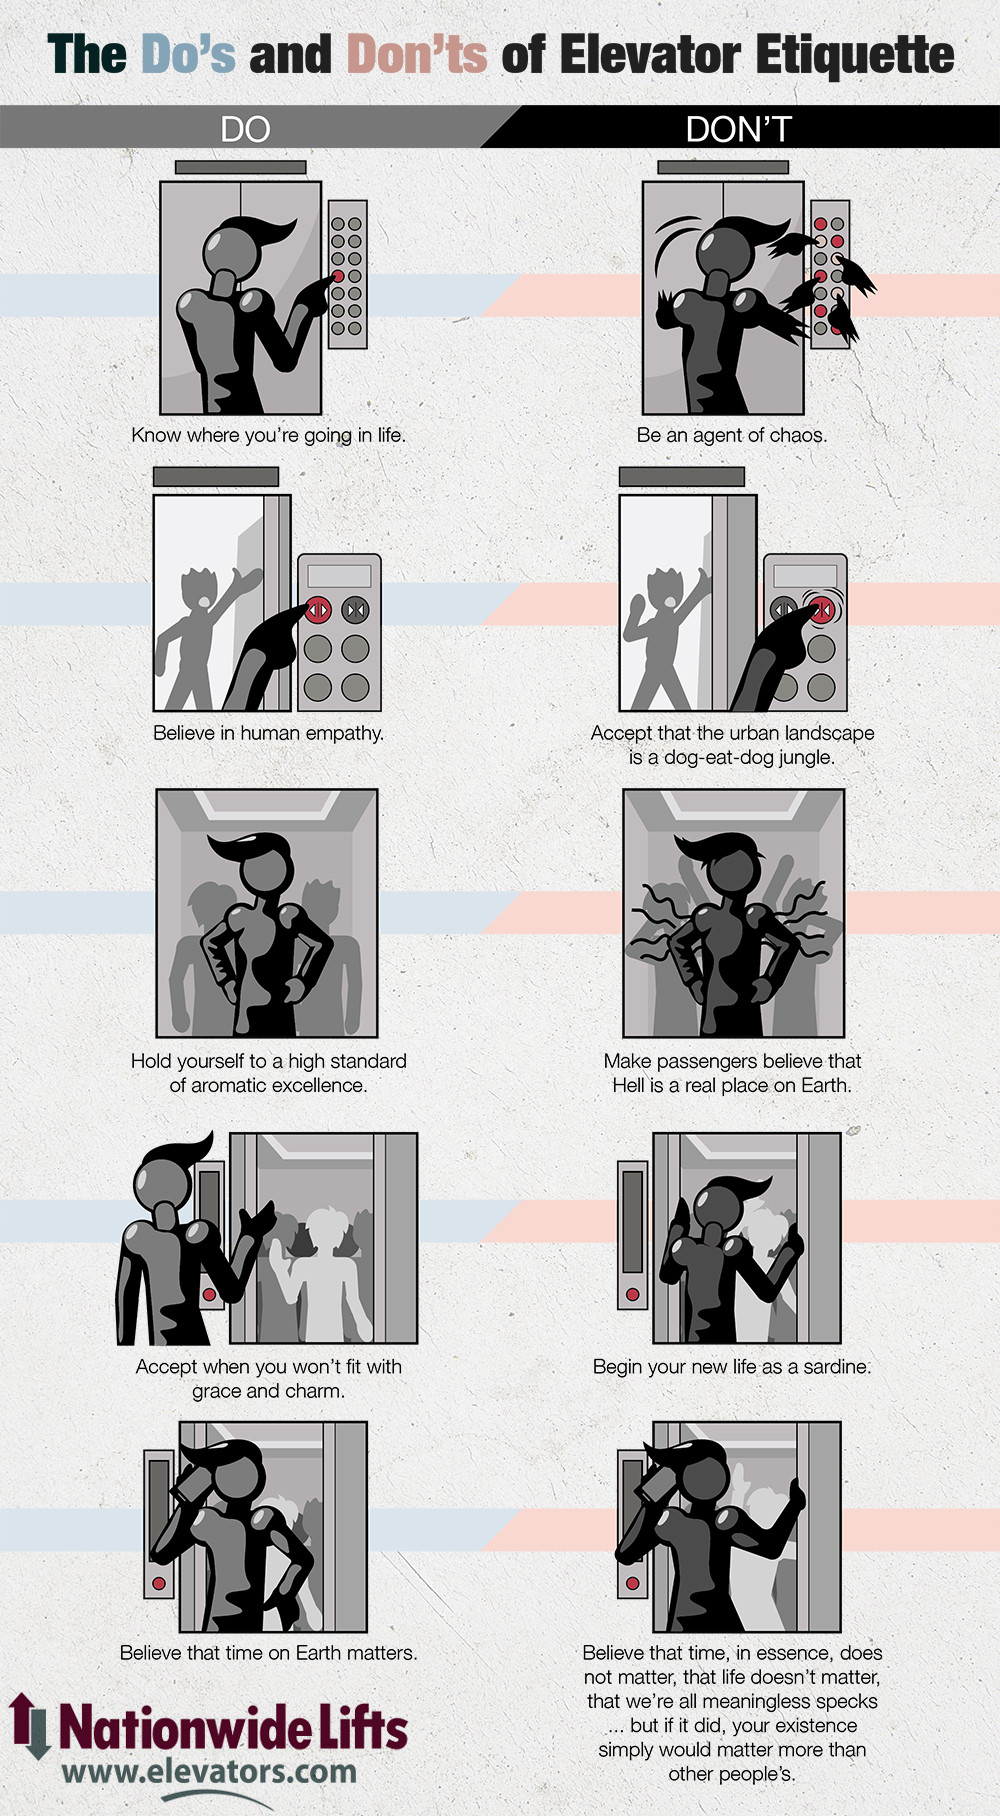 The Dos and Don'ts of Elevator Etiquette